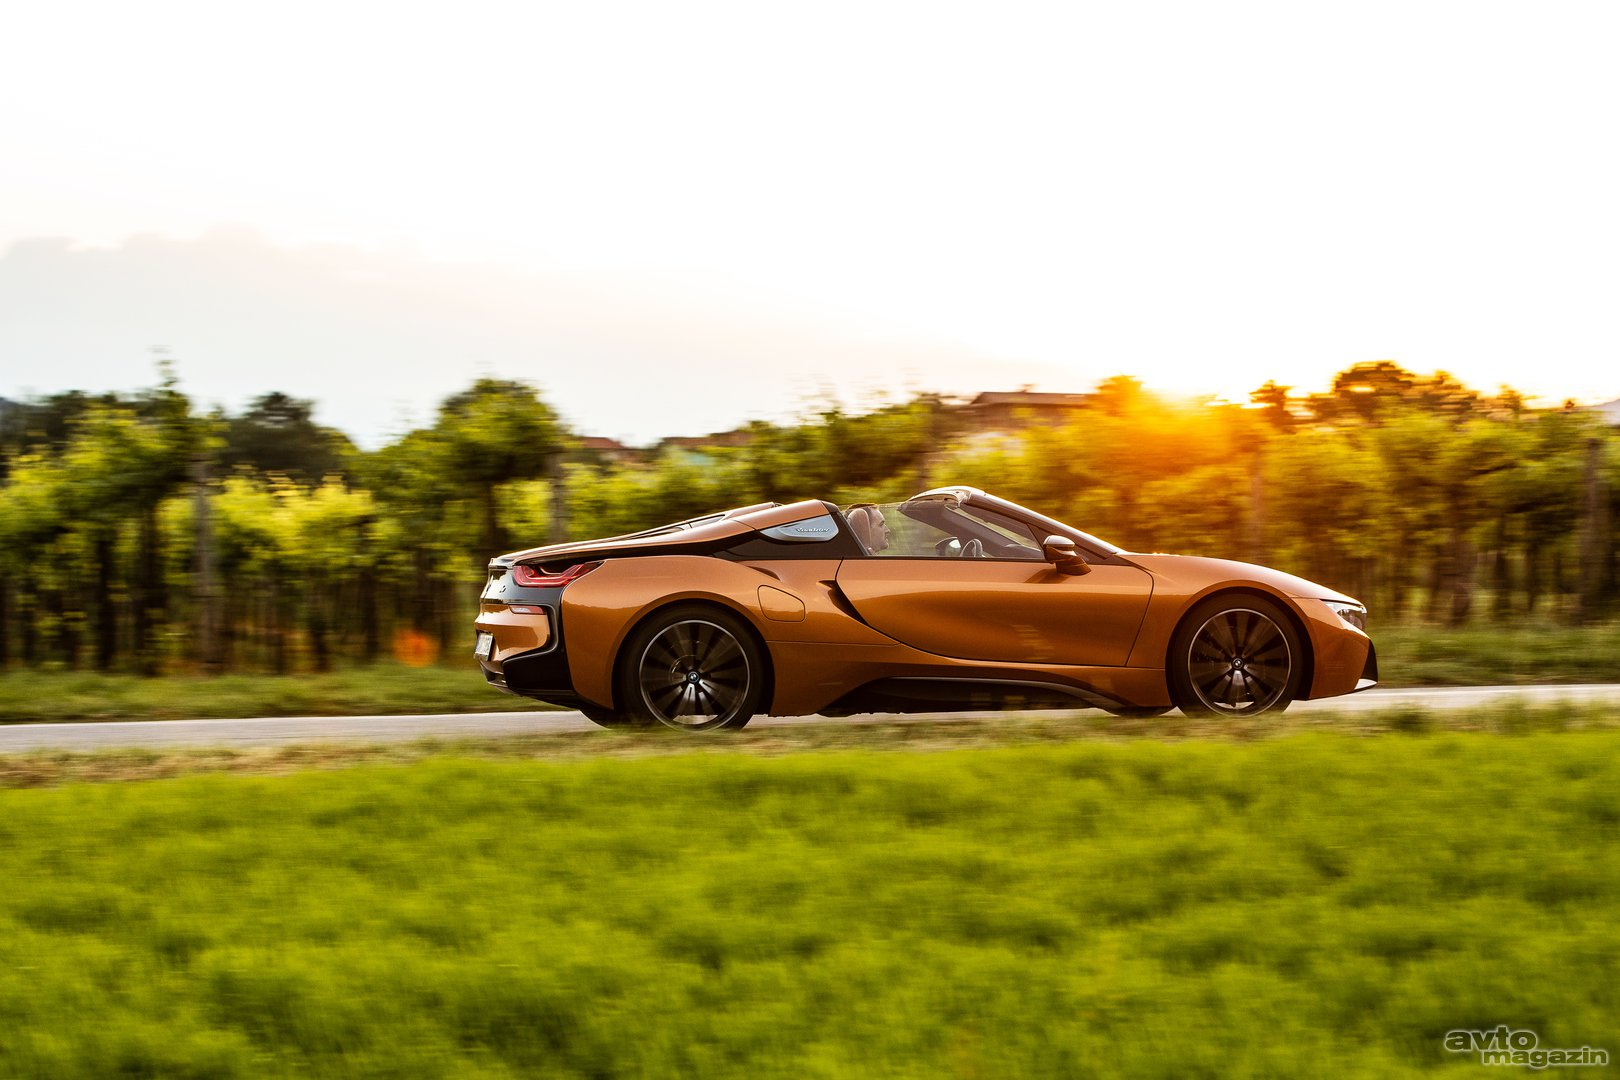 Novo V Sloveniji Bmw I8 Roadster In Bmw M5 Novice Avto Magazin